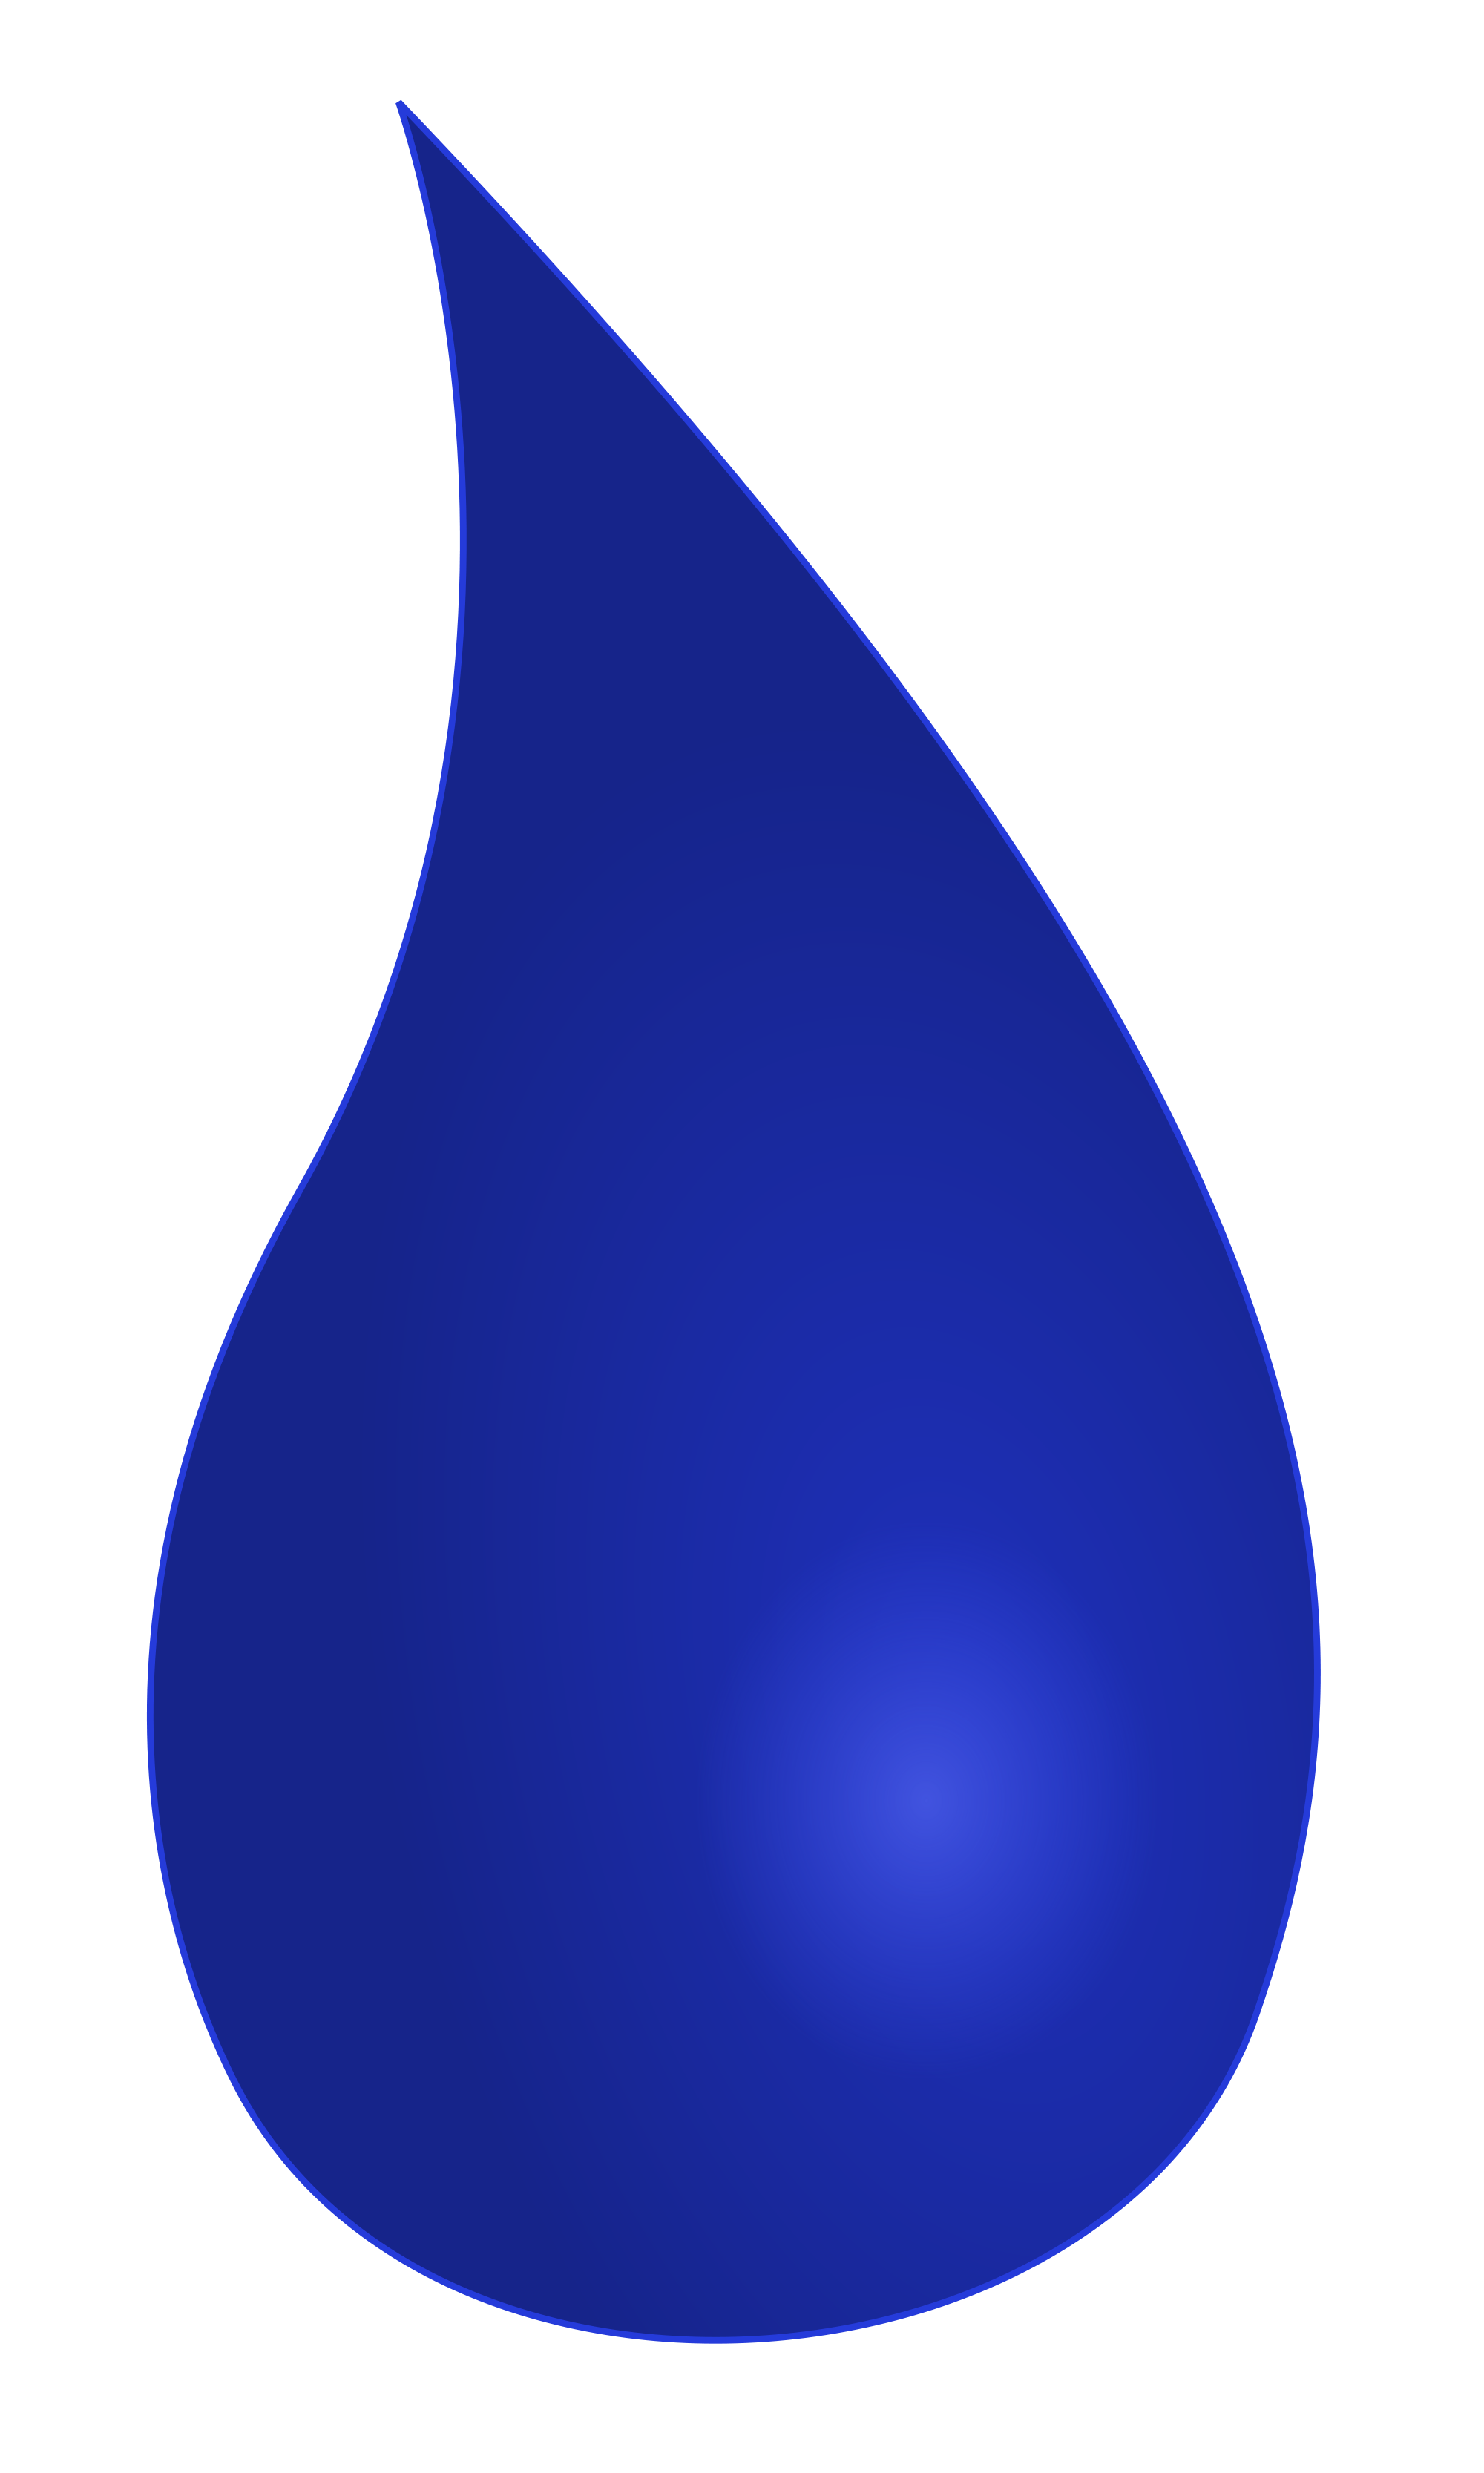 File:Water drop.svg - Wikimedia Commons